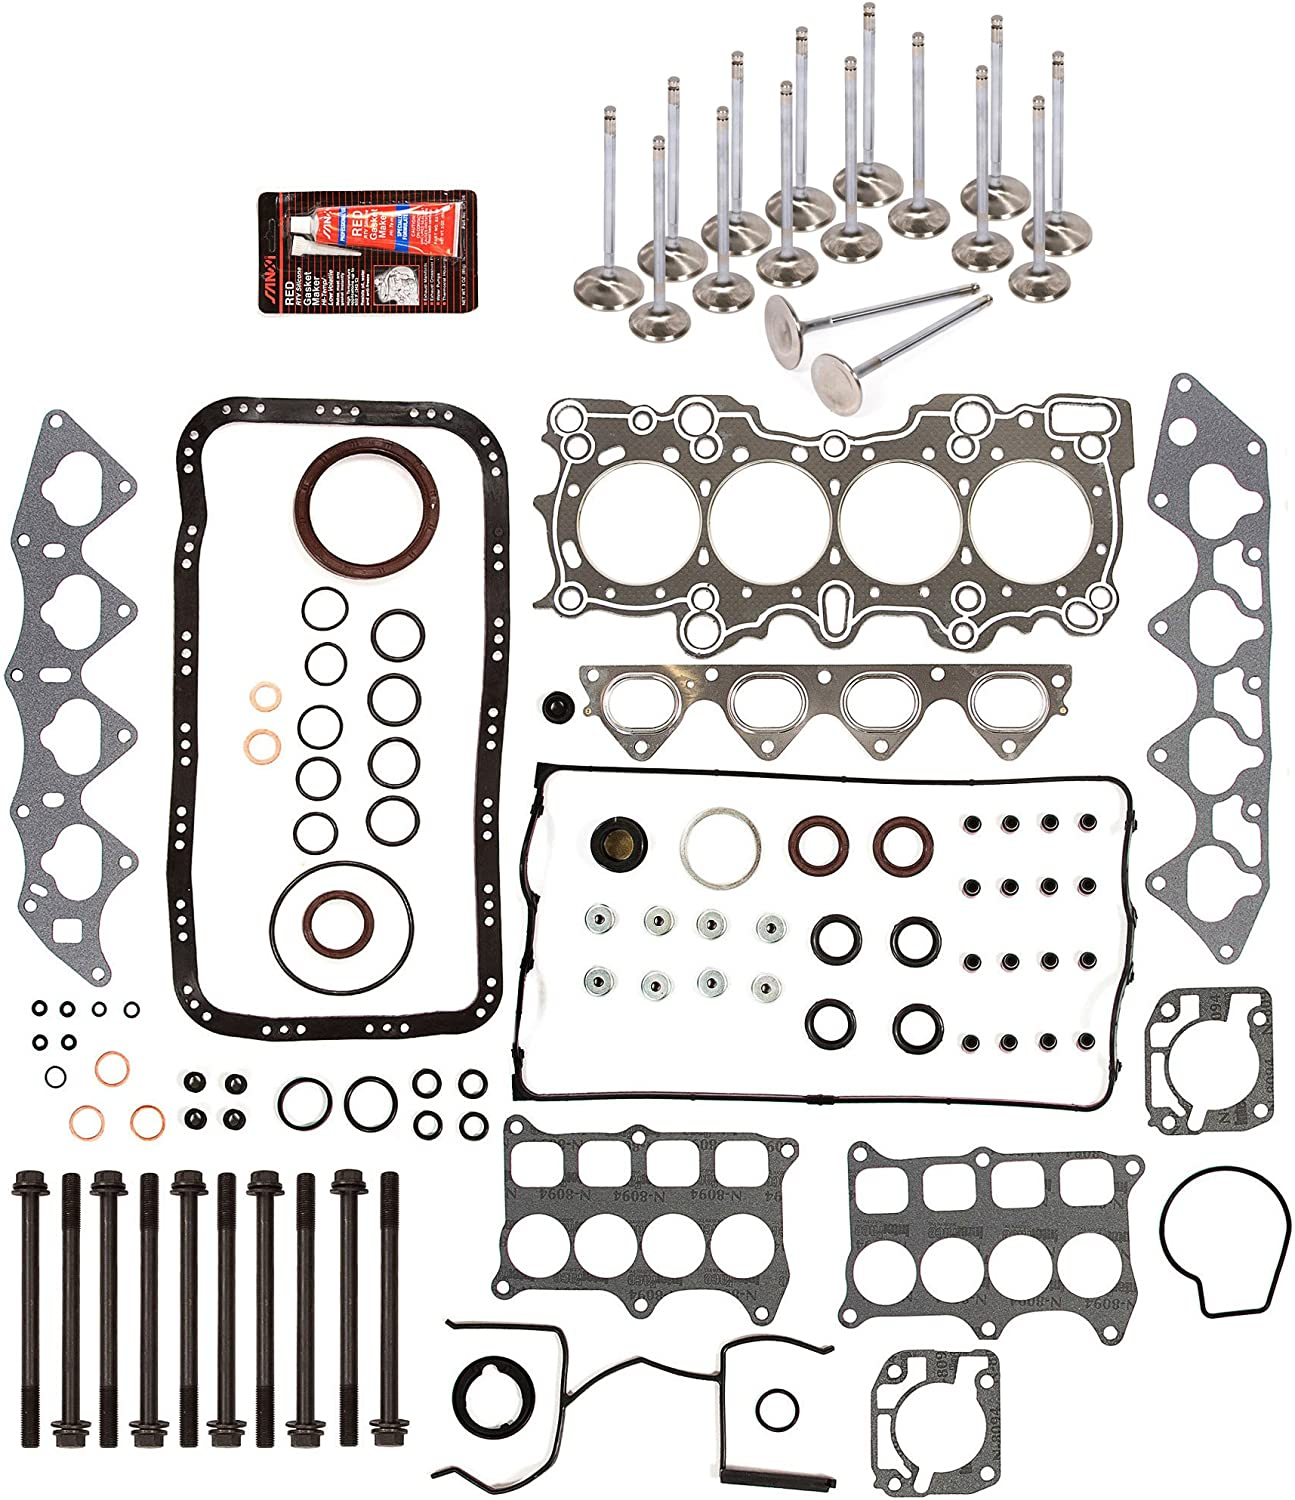 94-97 Honda Del Sol 1.6L VTec B16A3 DOHC FULL GASKET SET *RE-RING KIT*